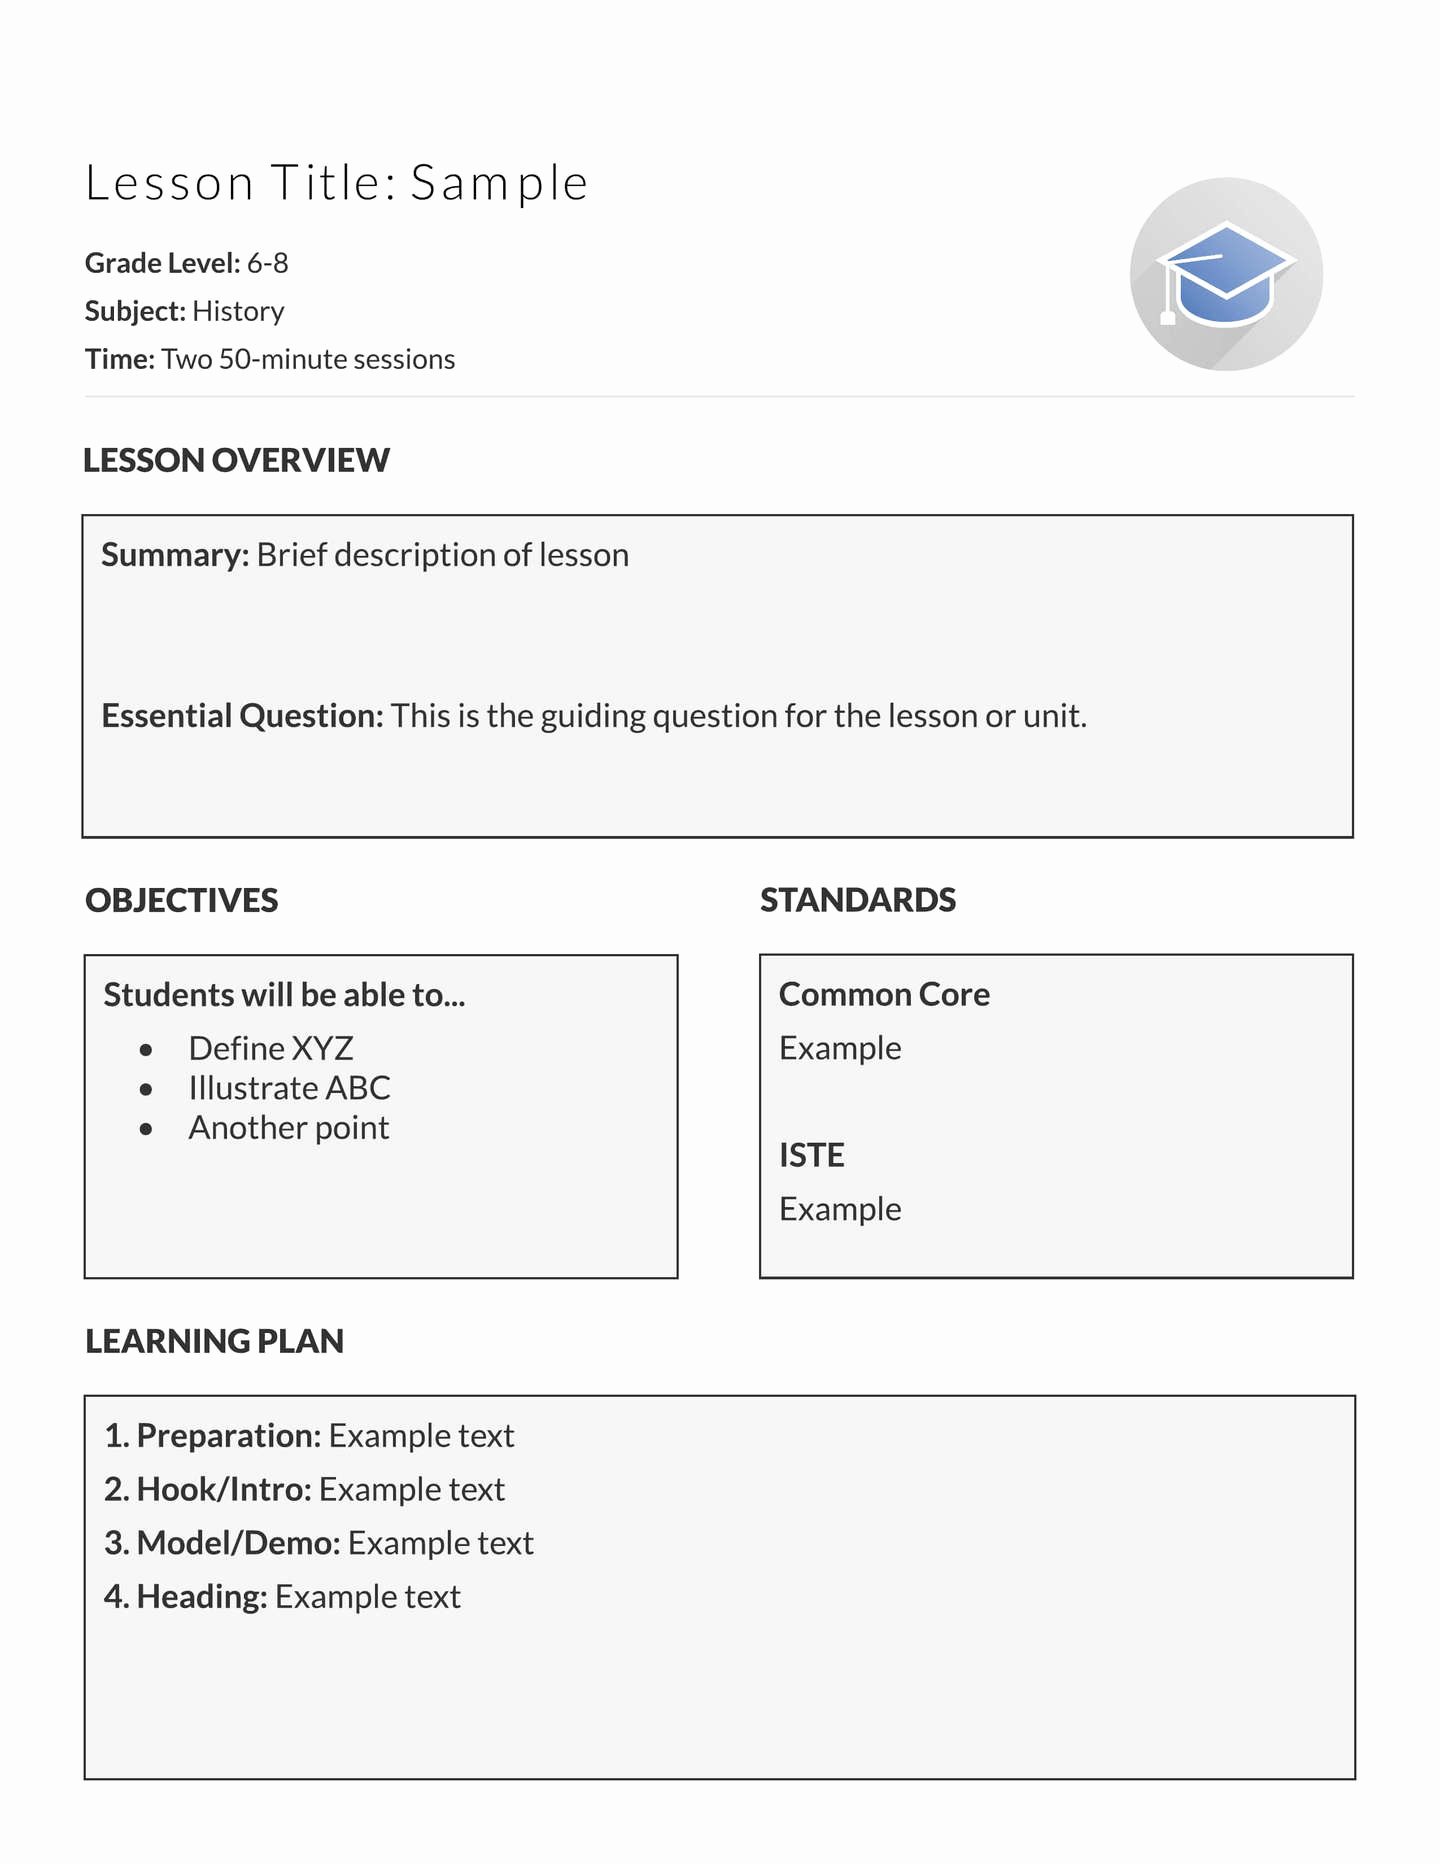 Sample Lesson Plan Template Inspirational 5 Free Lesson Plan Templates & Examples Lucidpress